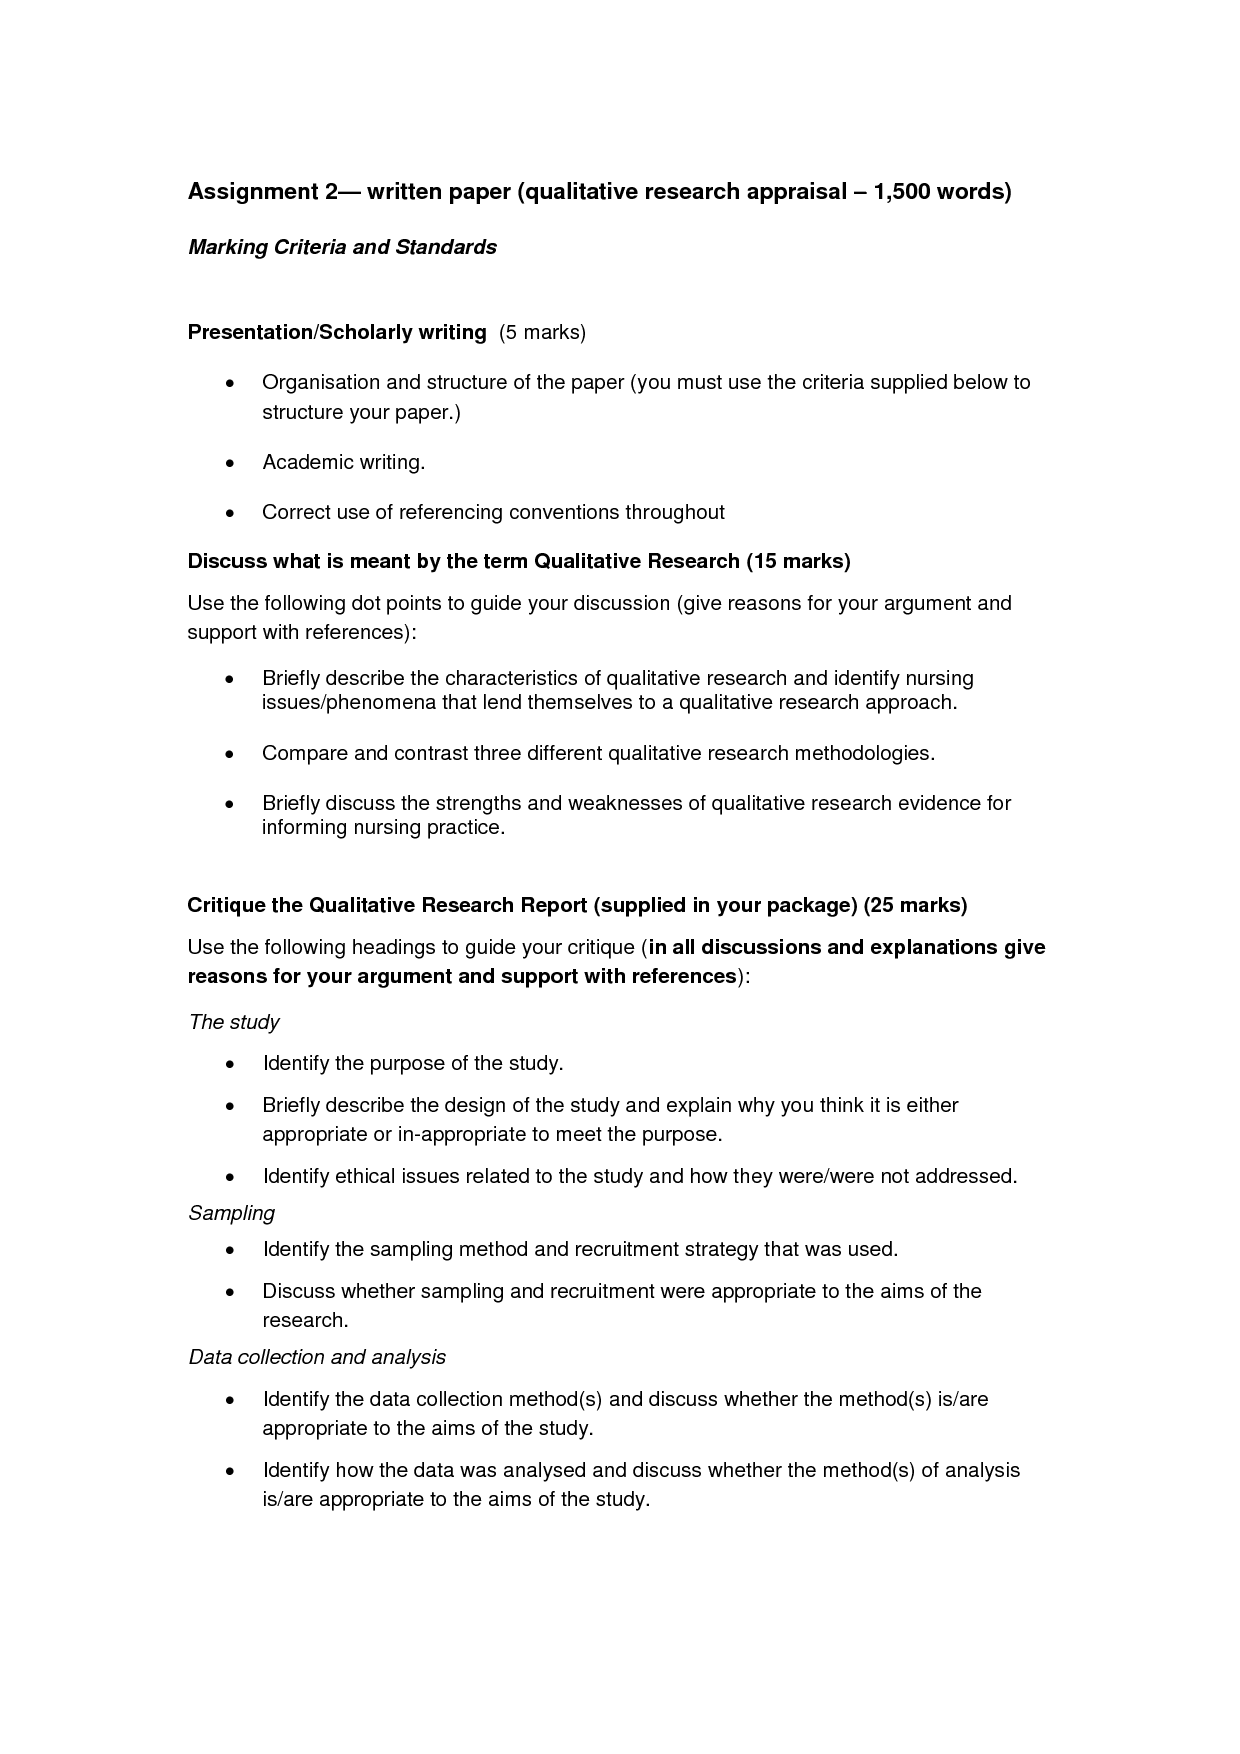 Nurse Researcher Sample Resume Karenshann Karenshann23 On Pinterest